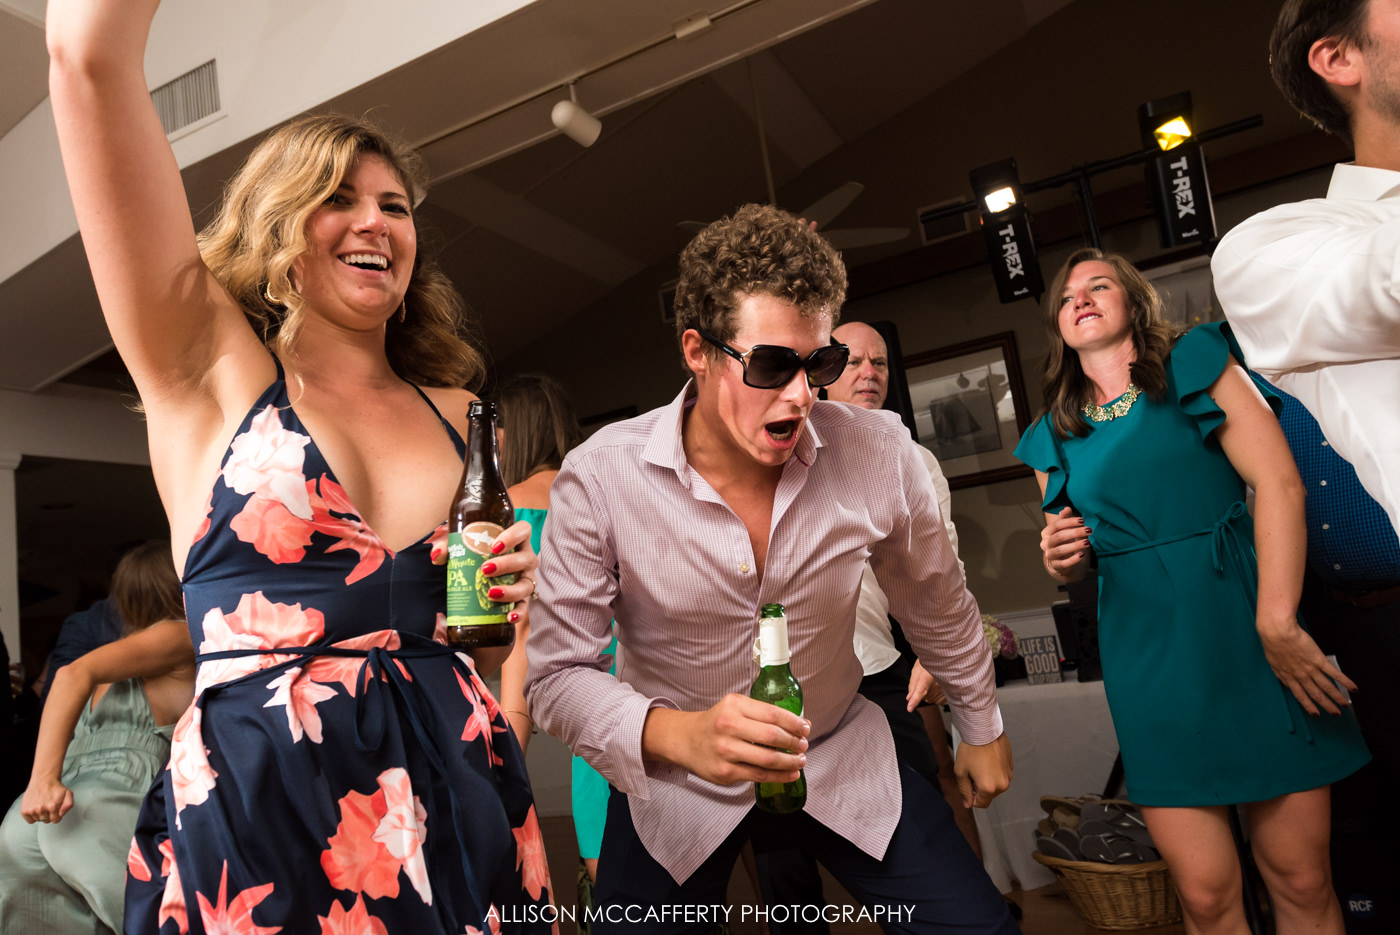 Fun dancing photos at Brant Beach Yacht Club